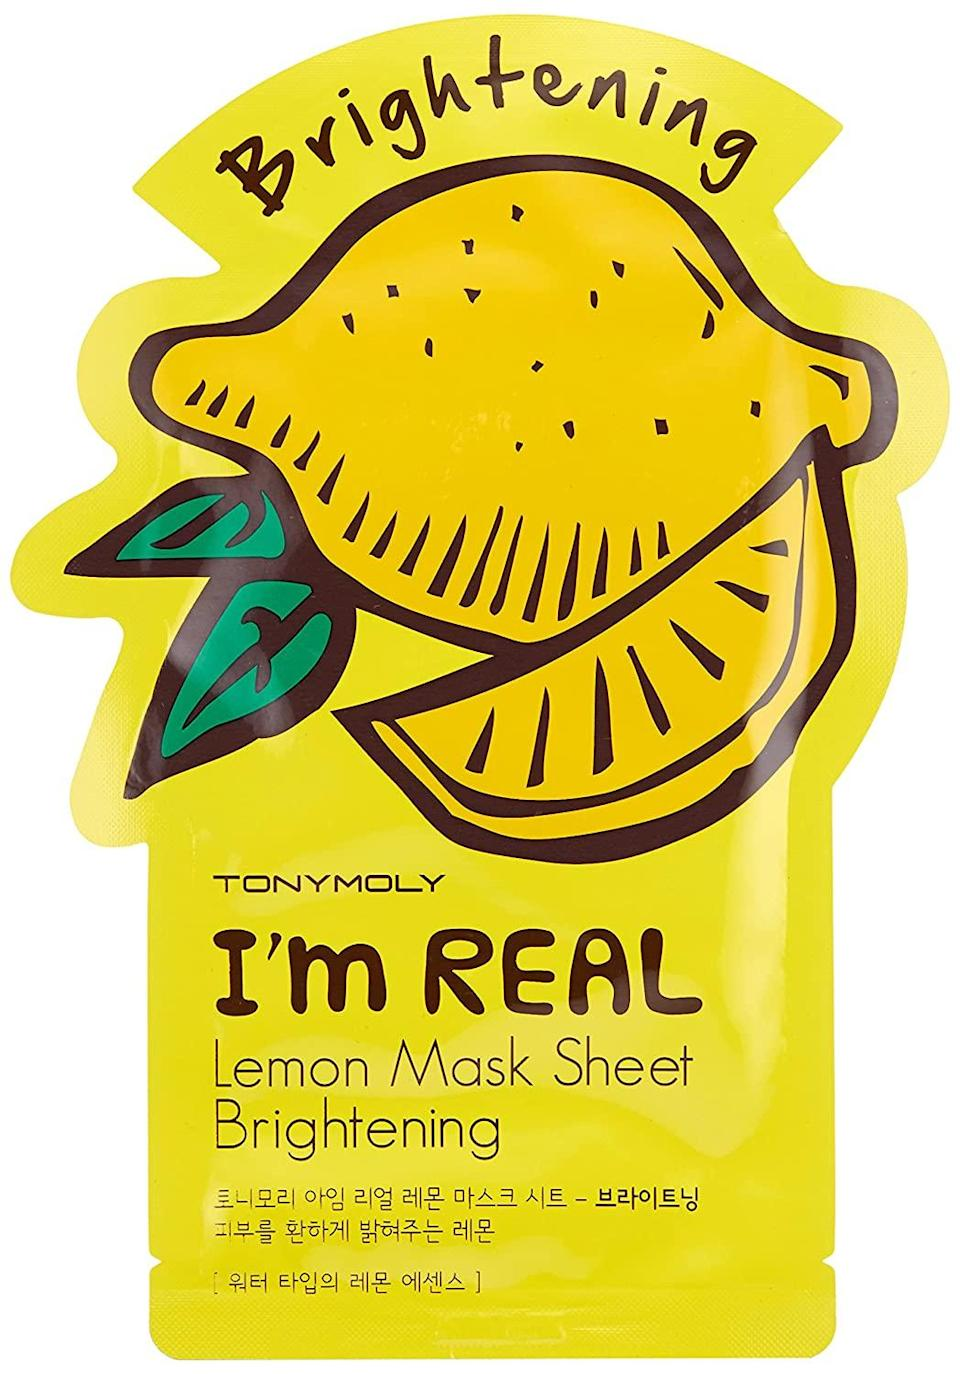 """<br> <br> <strong>TonyMoly</strong> I'm Real Lemon Radiance Mask Sheet (10-Pack), $, available at <a href=""""https://amzn.to/2VBKvSA"""" rel=""""nofollow noopener"""" target=""""_blank"""" data-ylk=""""slk:Amazon"""" class=""""link rapid-noclick-resp"""">Amazon</a>"""